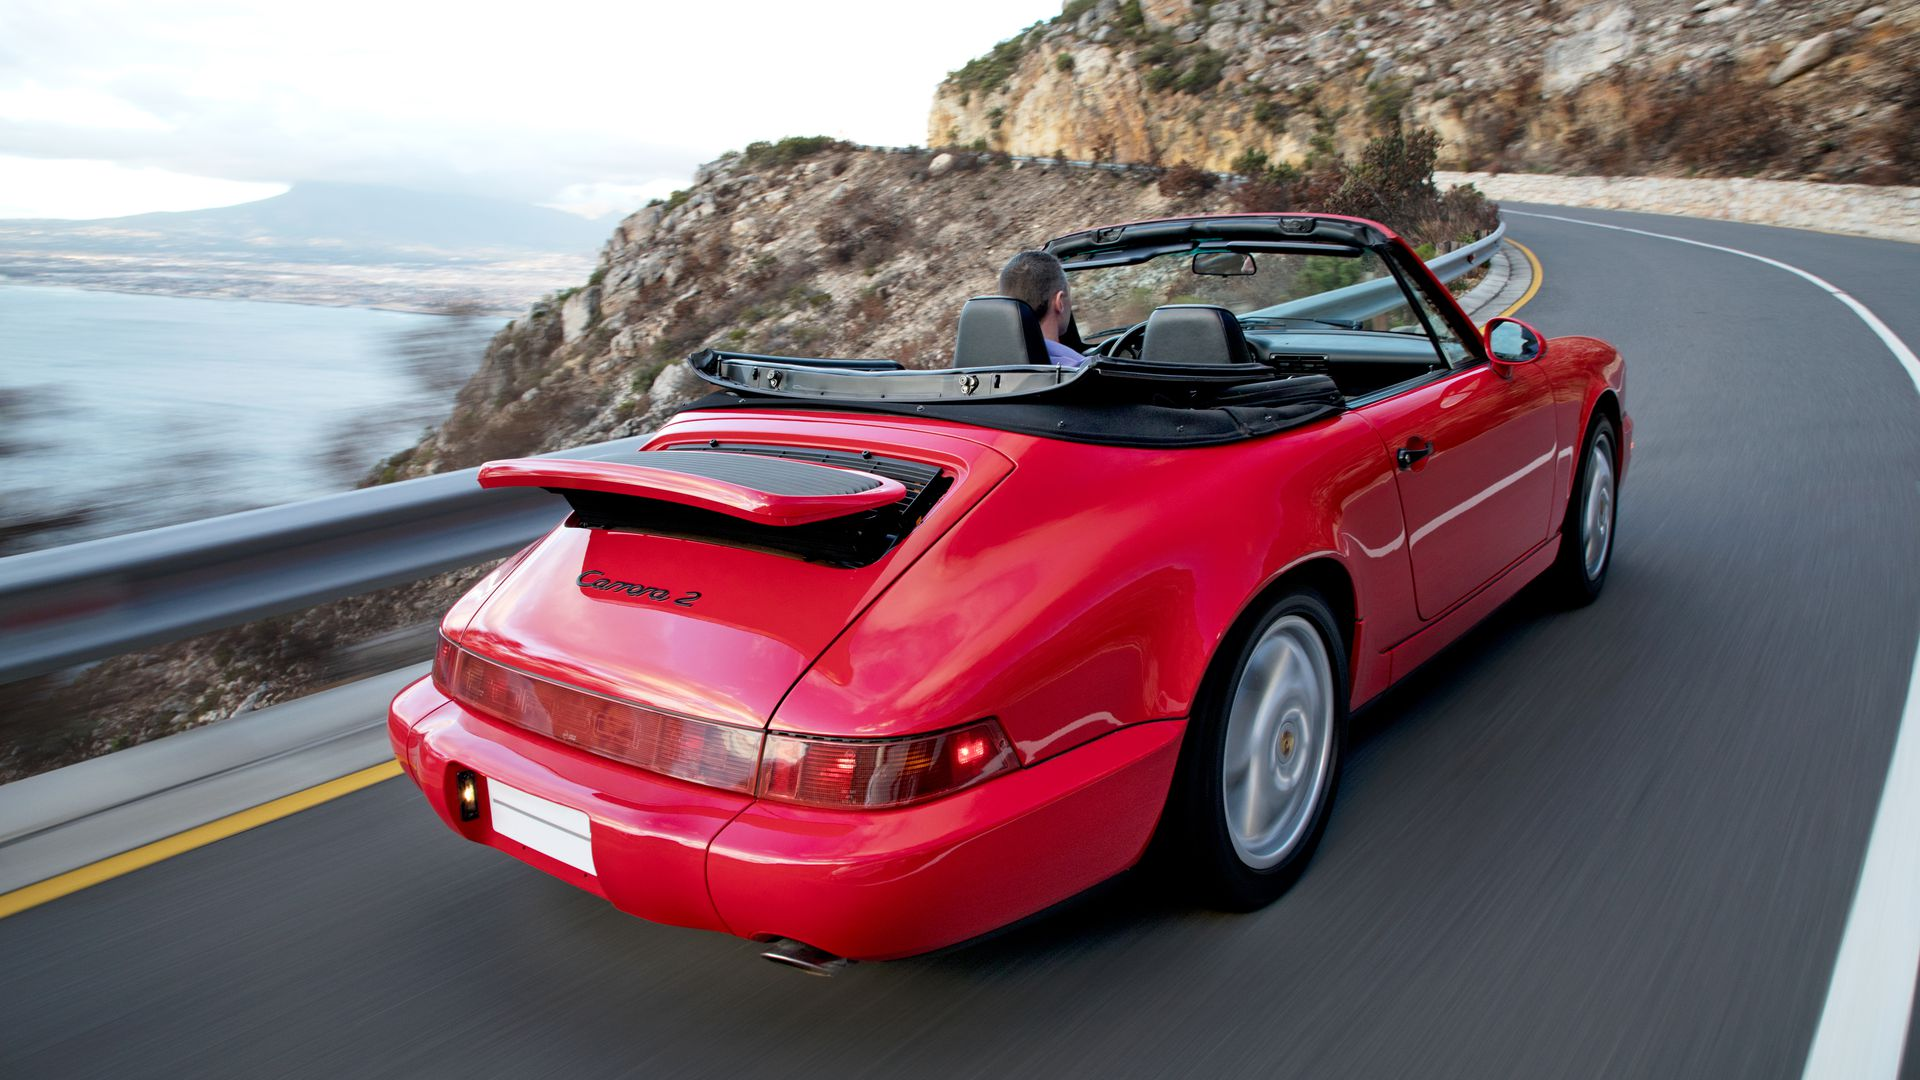 Photo of a red Porsche on a winding road overlooking the ocean